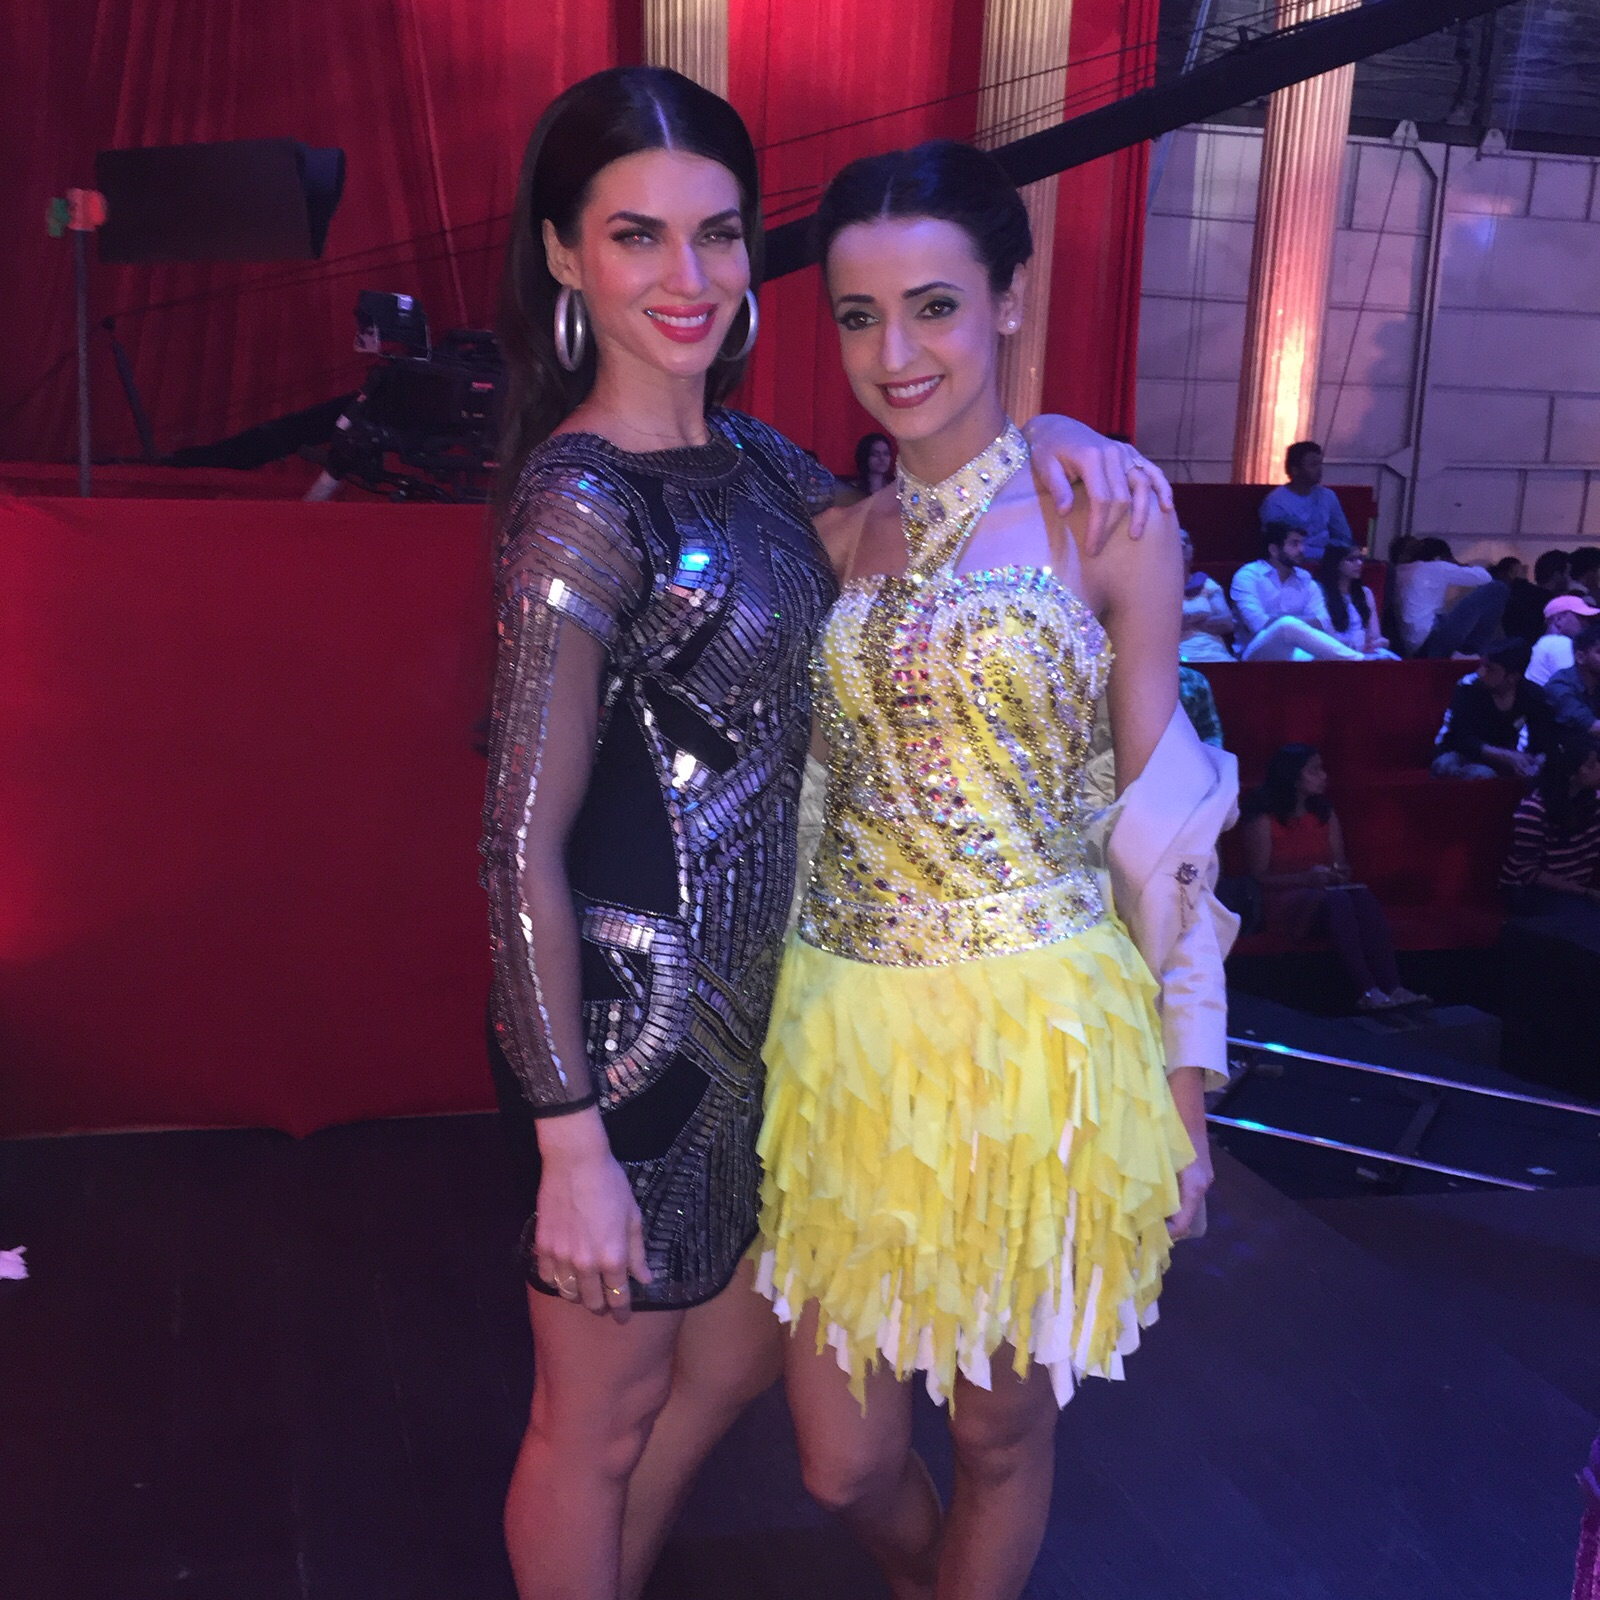 Scarlett and Sanaya